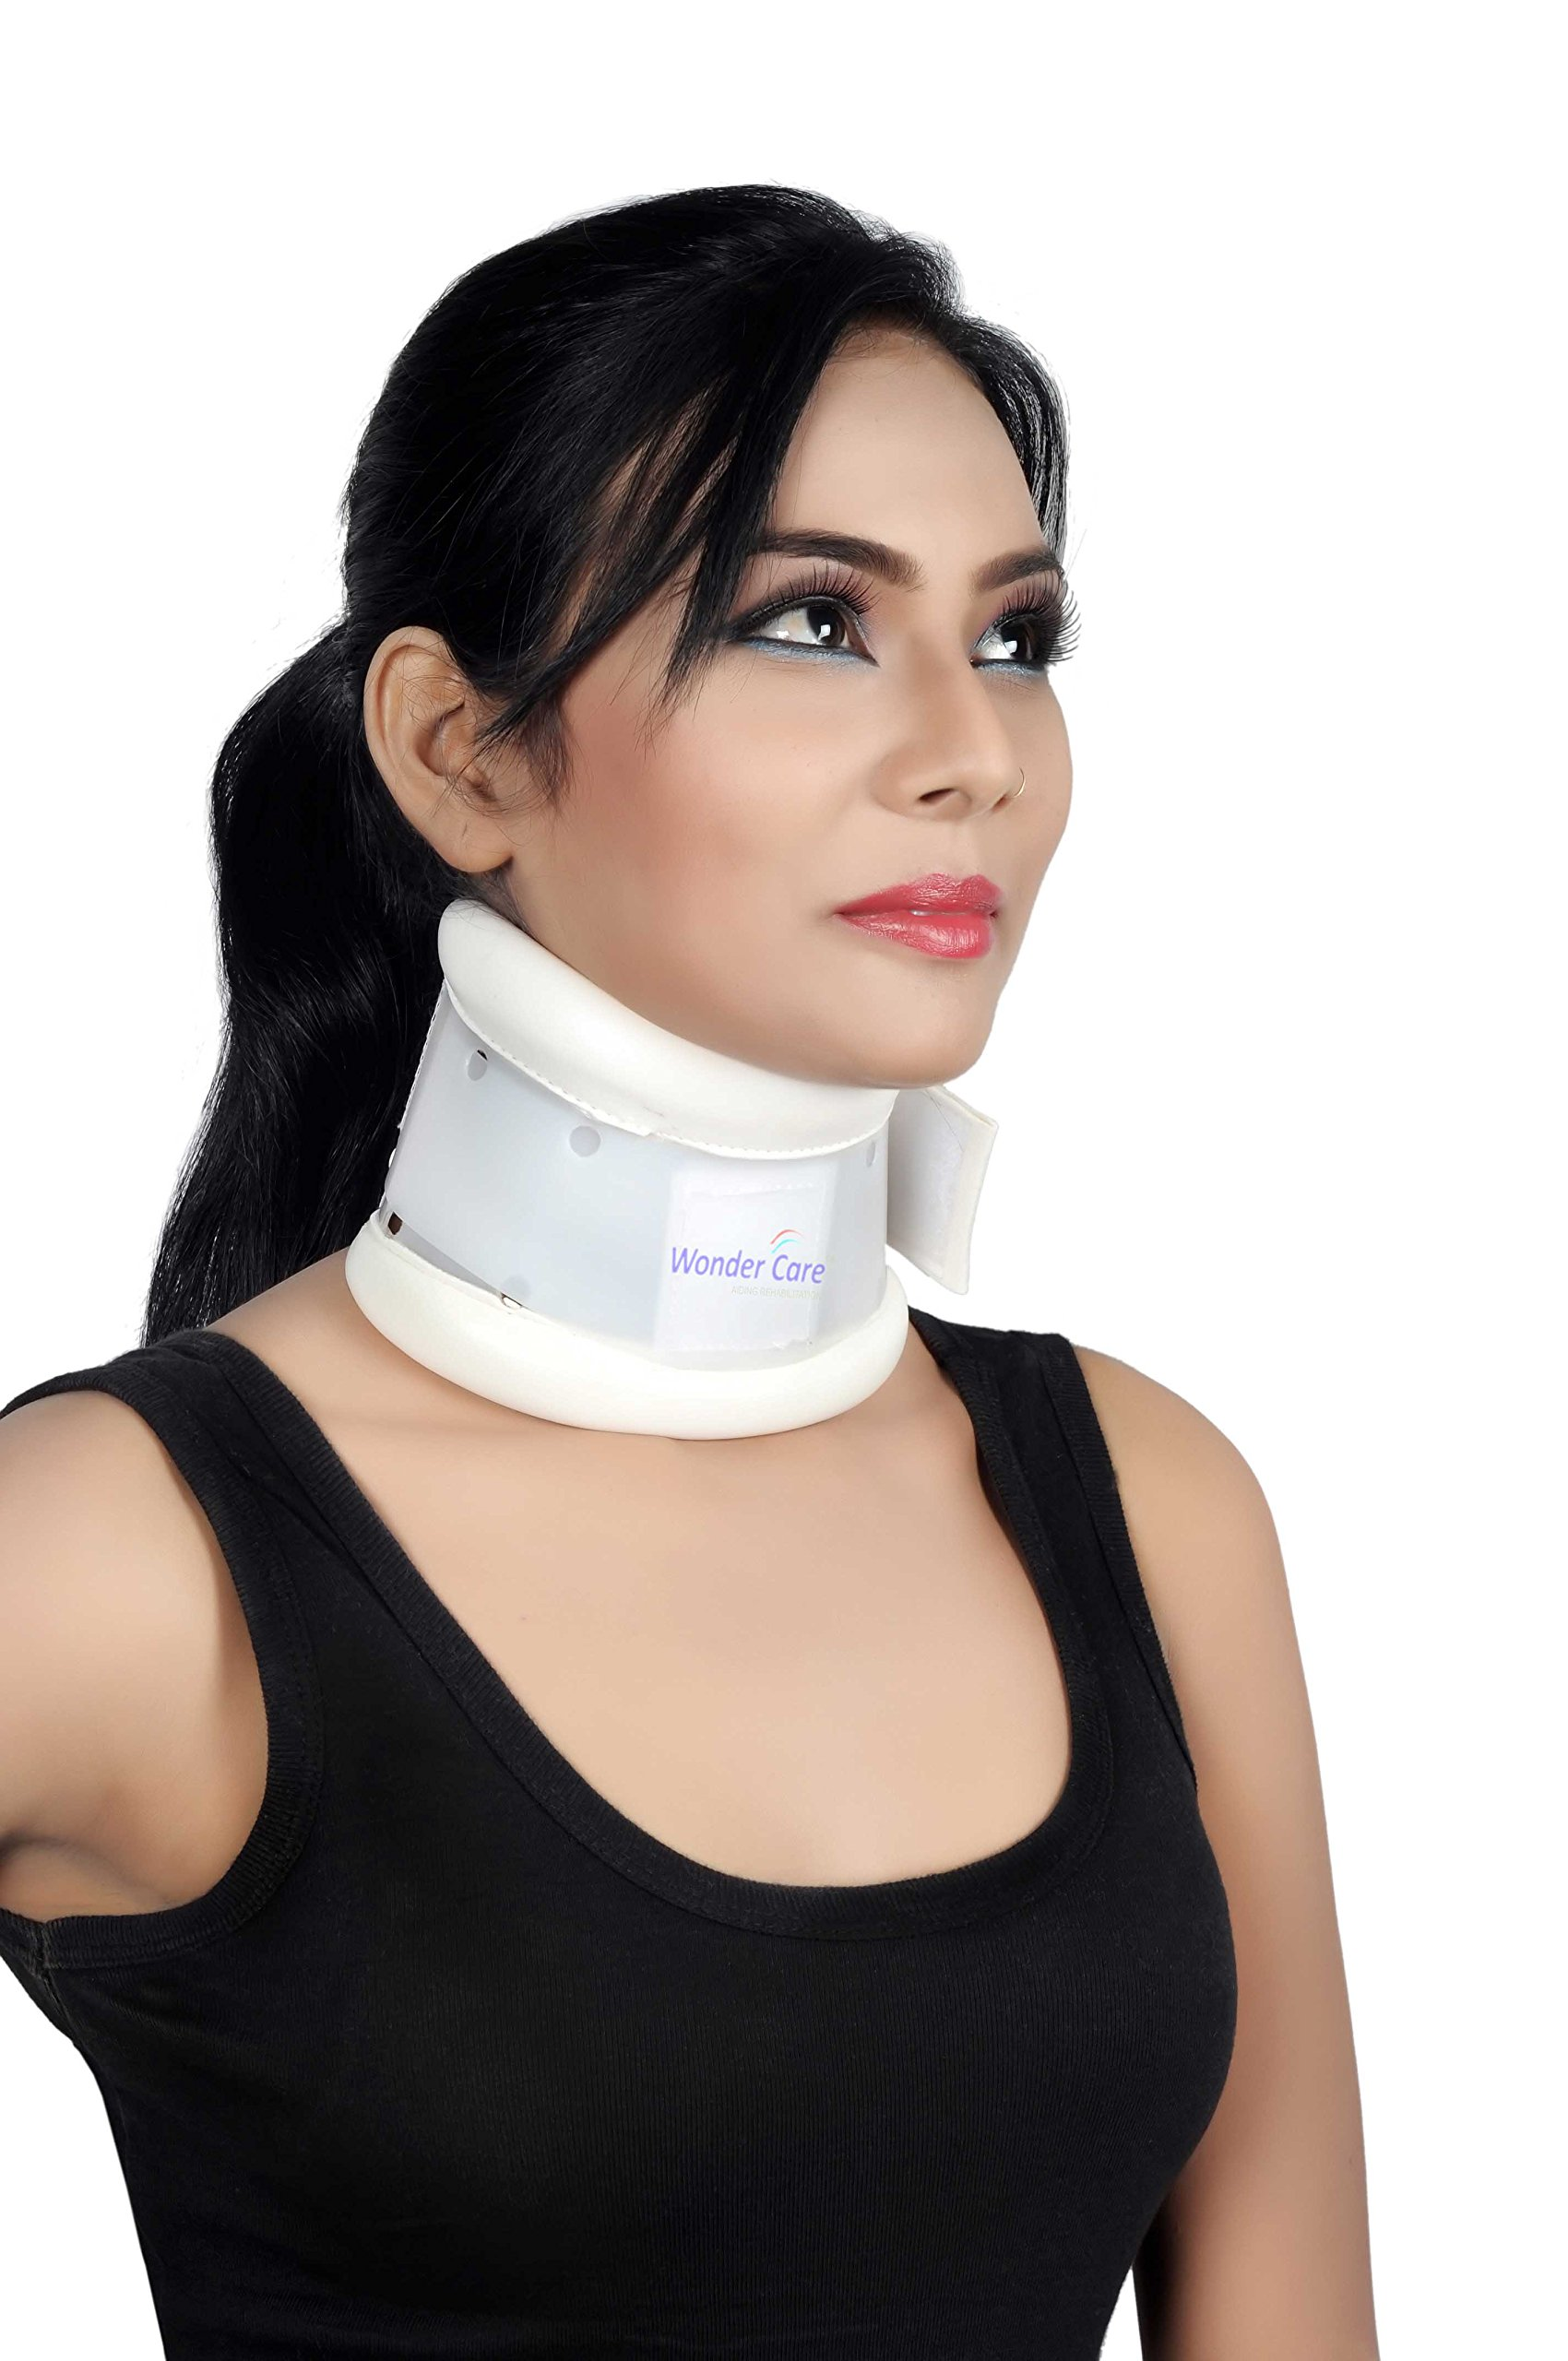 Wonder Care- Rigid Cervical Collar | Plastic Neck Support Brace Adjustable height Collar Neck Support Brace, Wraps Aligns & Stabilizes Vertebrae - Relieves Pain & Pressure in Spine- C103 - L